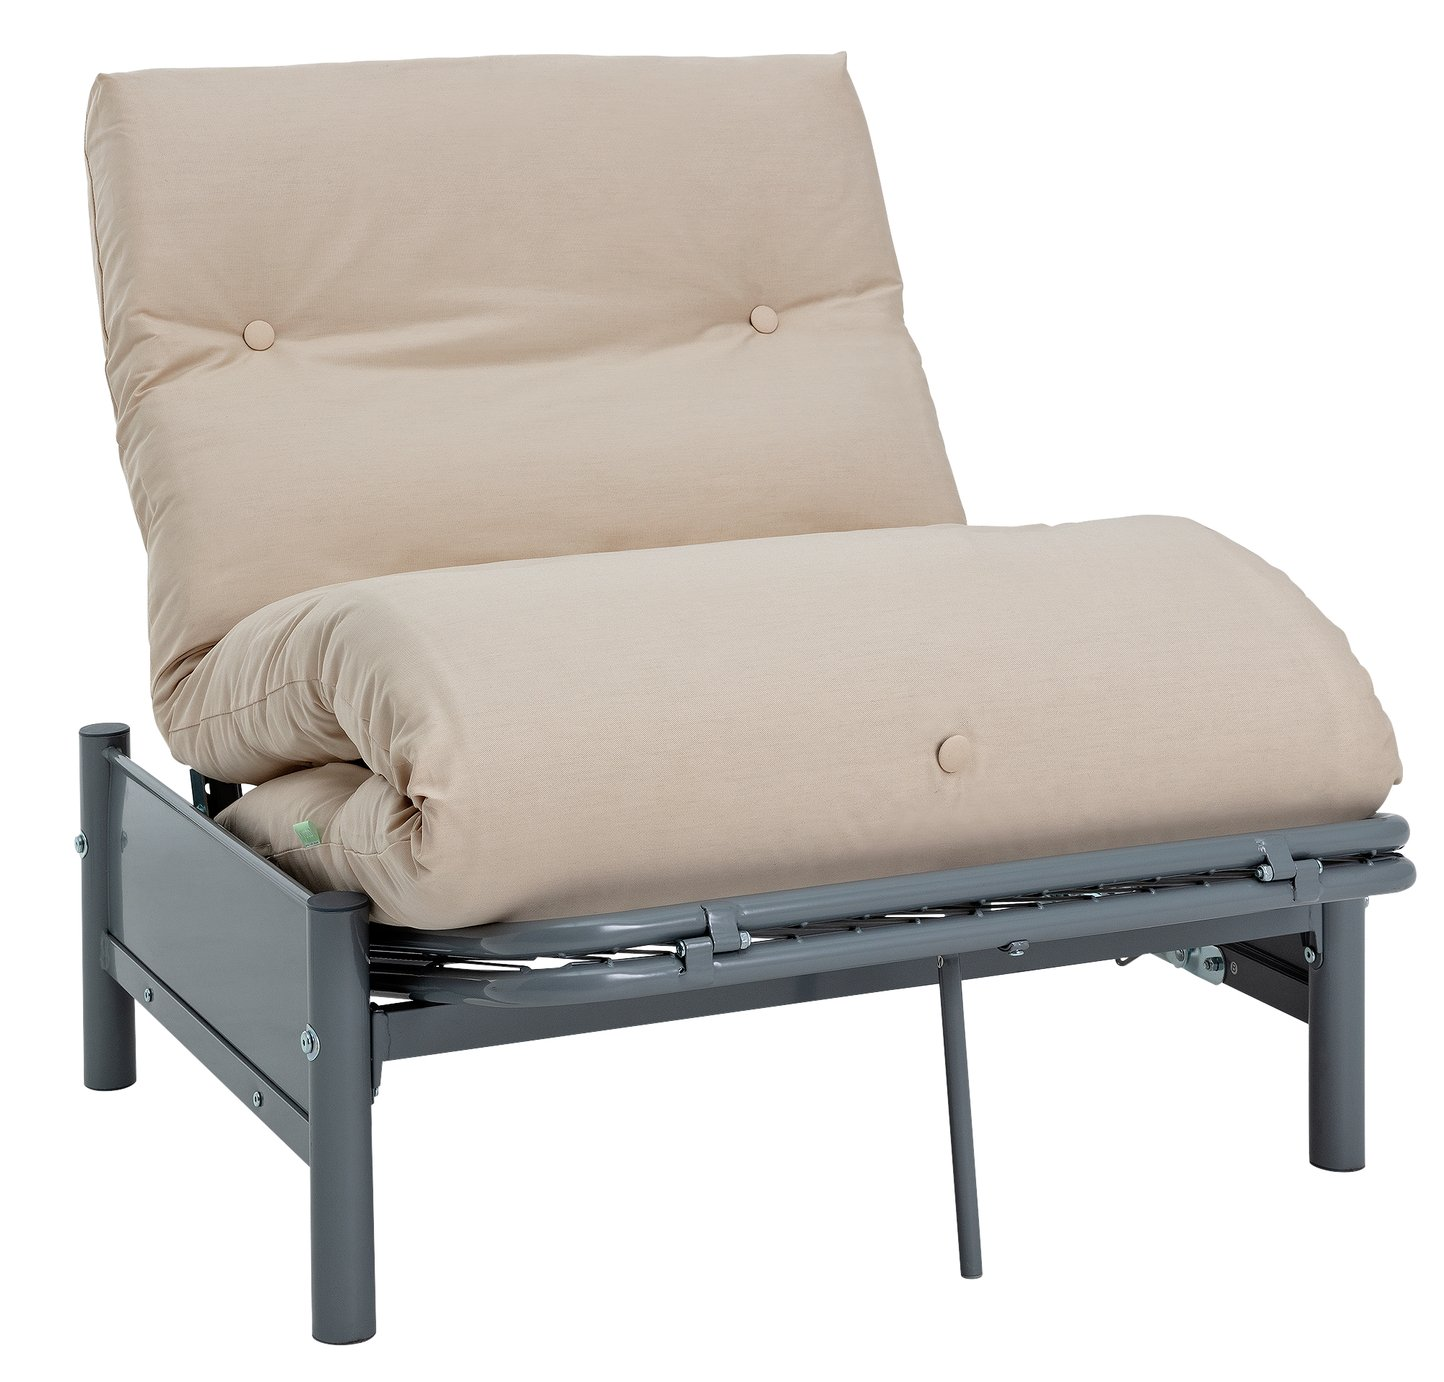 Single Sofa Bed Single Seat Sofa Bed 34 With Single Seat Sofa Bed